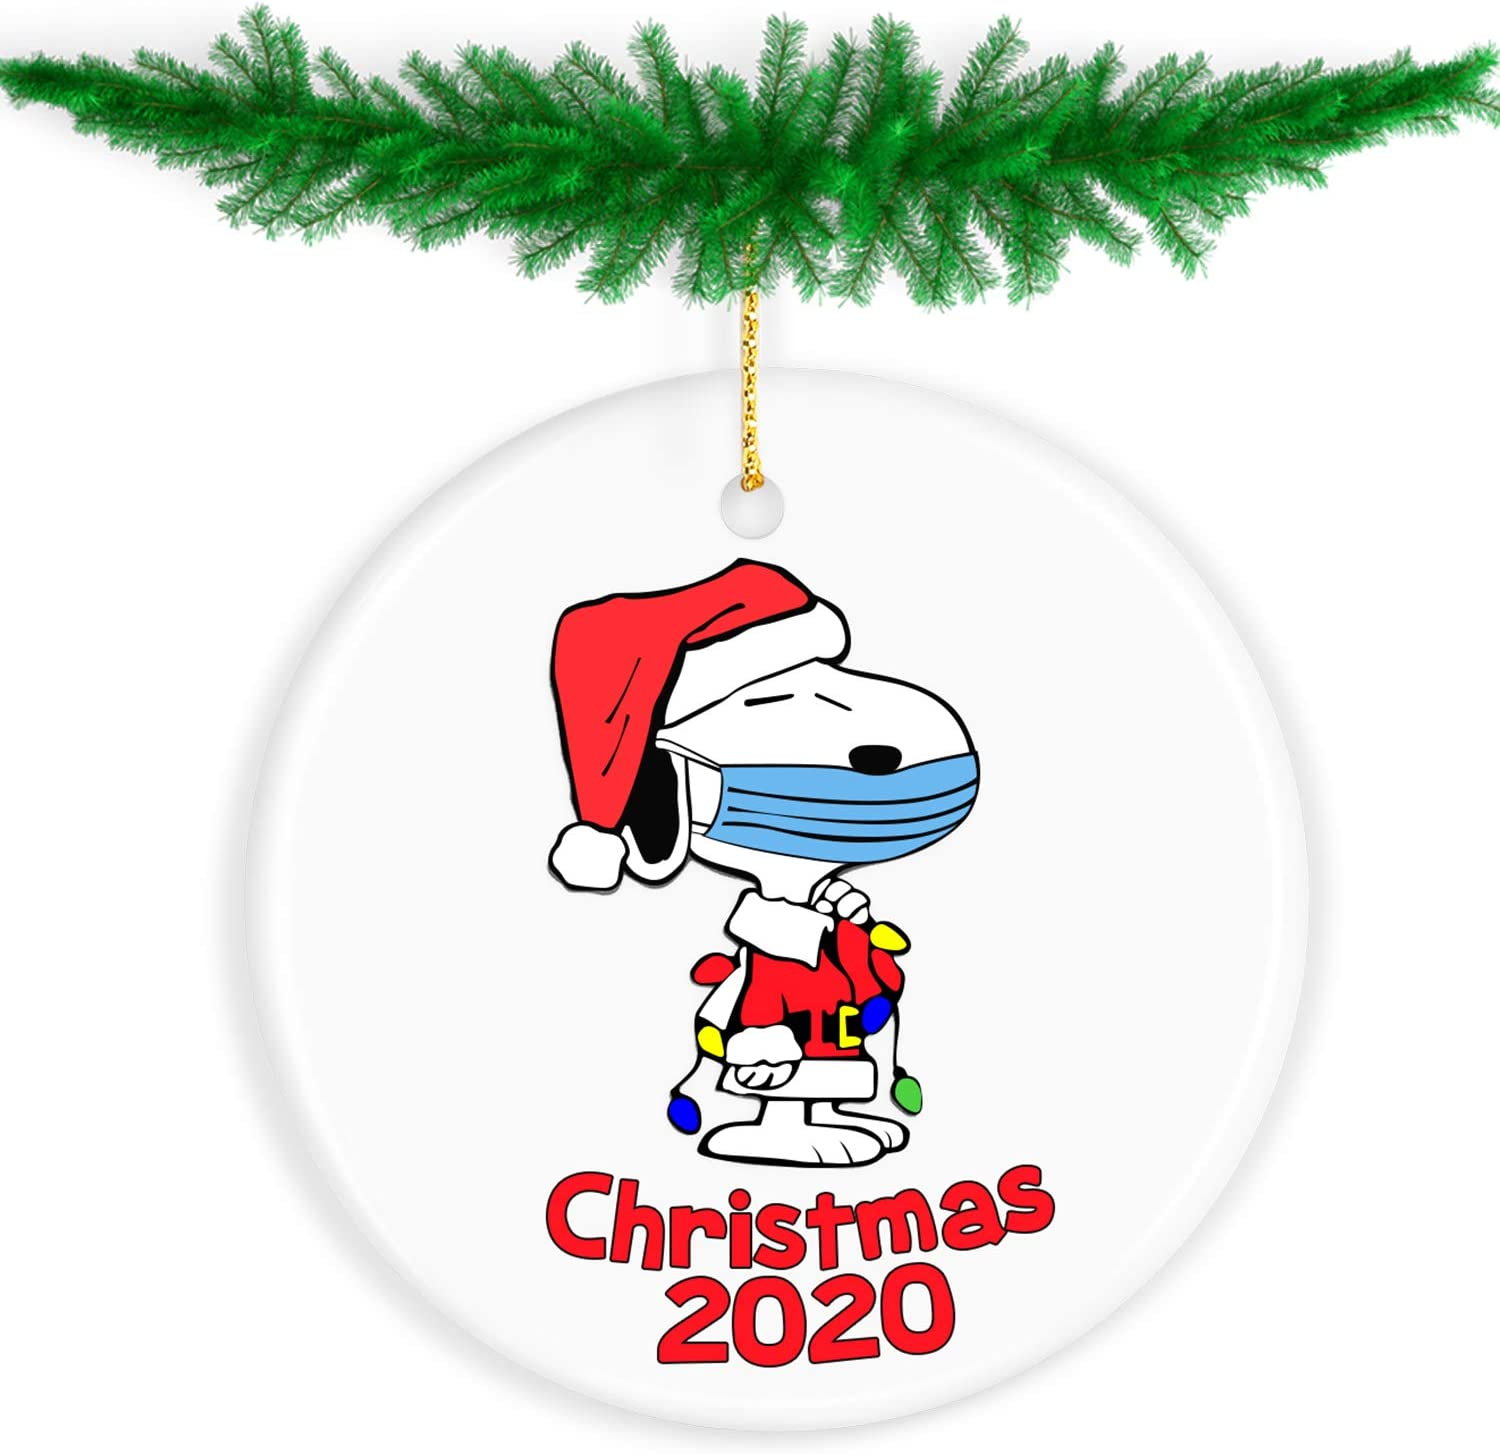 Firstlaw Fitness Christmas Decorations Clearance, Christmas Ornaments 2020 Christmas Ornament Quarantine Funny Home Decor Christmas Tree Decorations 2020 Ornament - Gifts for Christmas